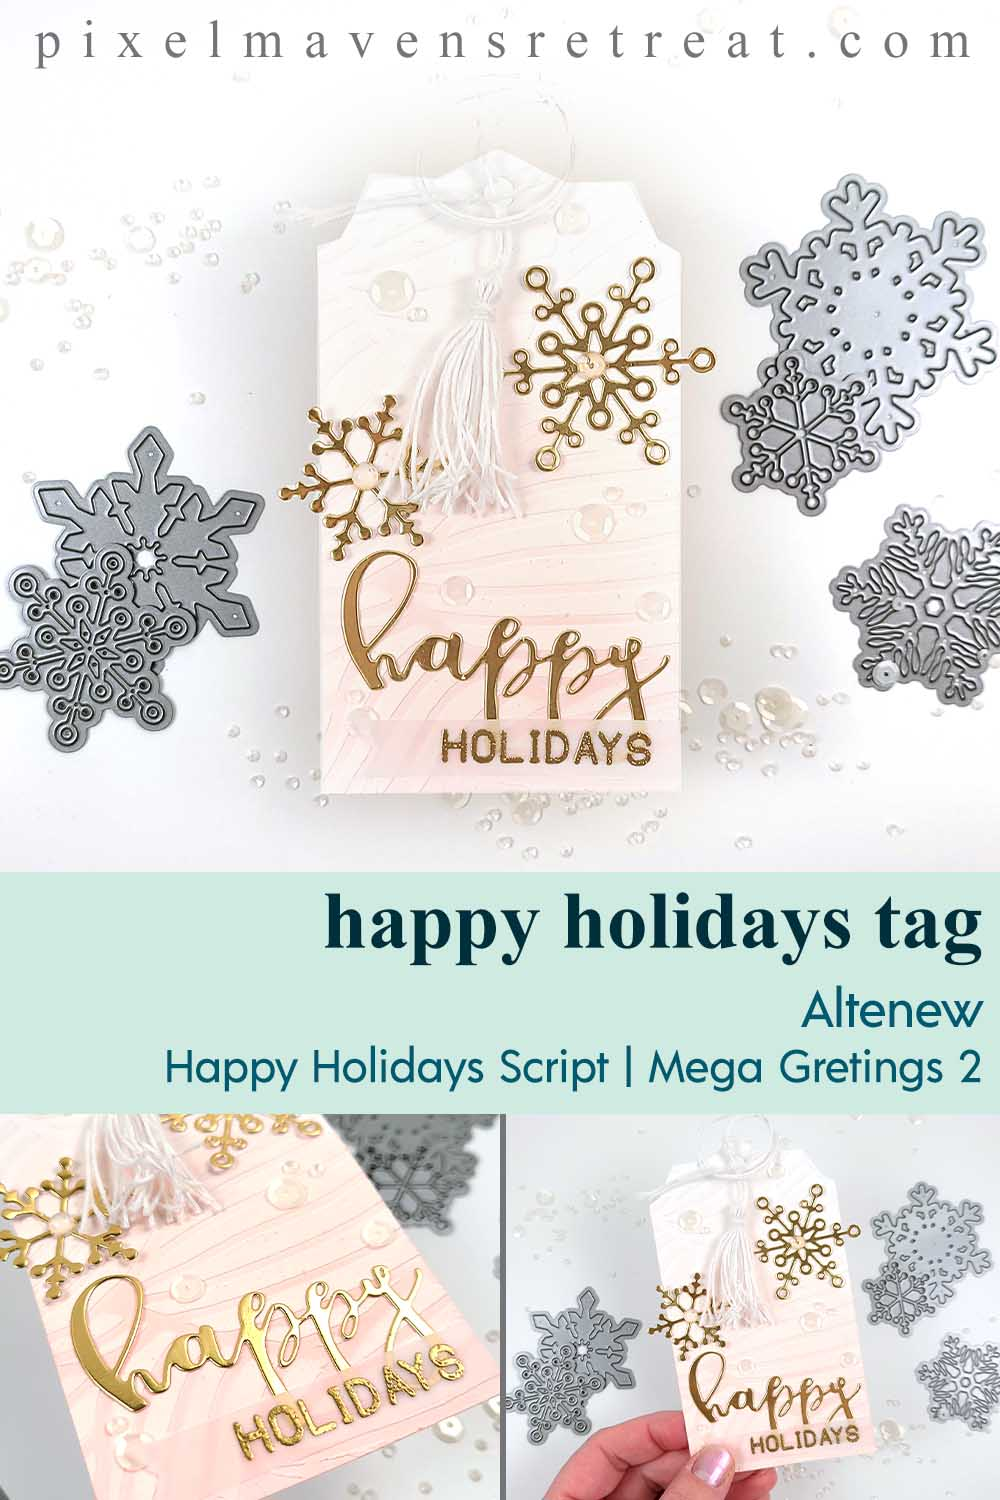 25 Days of Christmas Tags - Day 3 with Altenew!